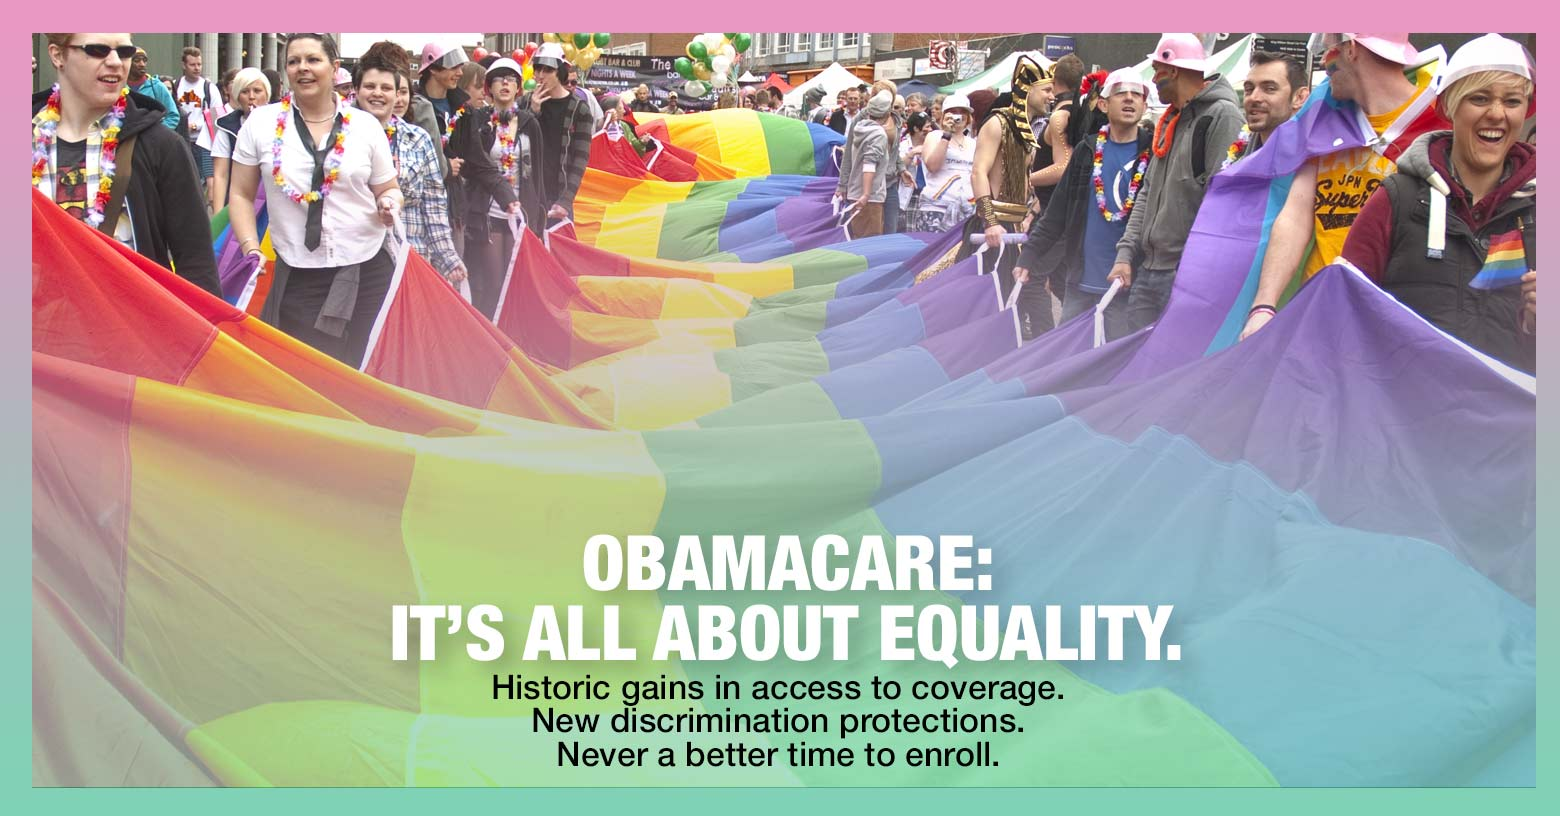 LGBT gains under ACA are all about equality photo